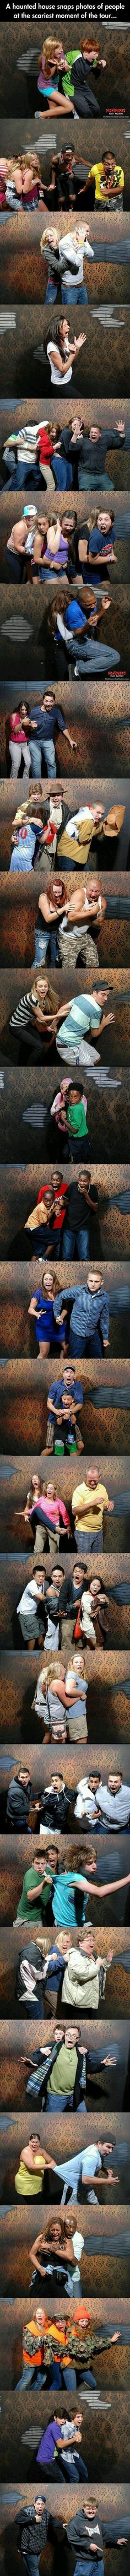 50 hilariously ridiculous haunted house reactions - Imgur Post Imgur Funny Picturesposts